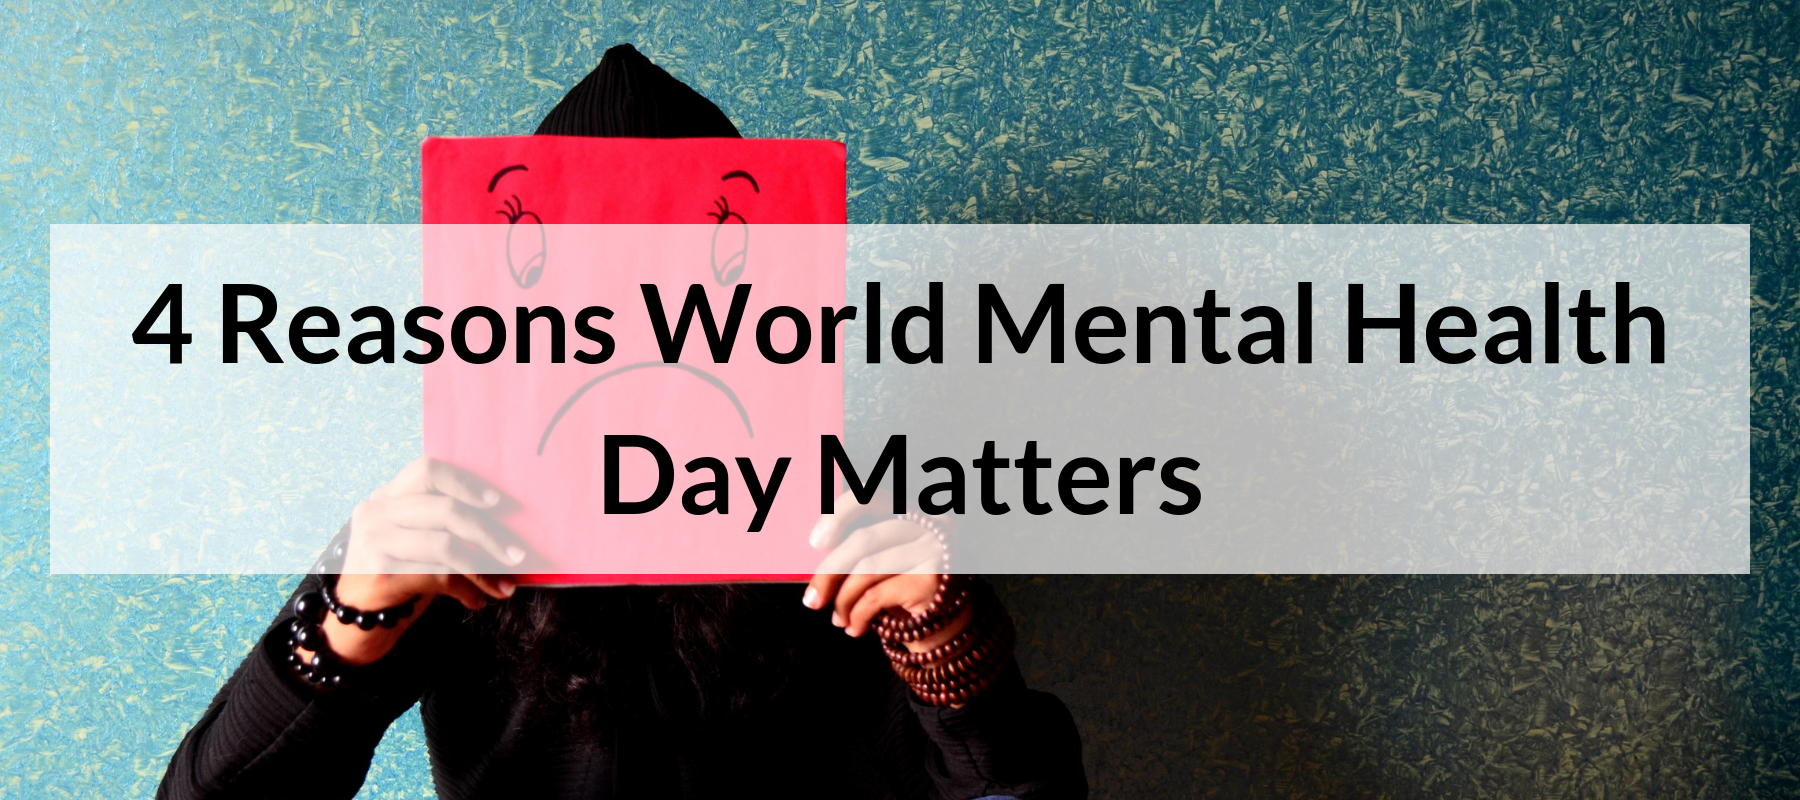 4 Reasons World Mental Health Day Matters